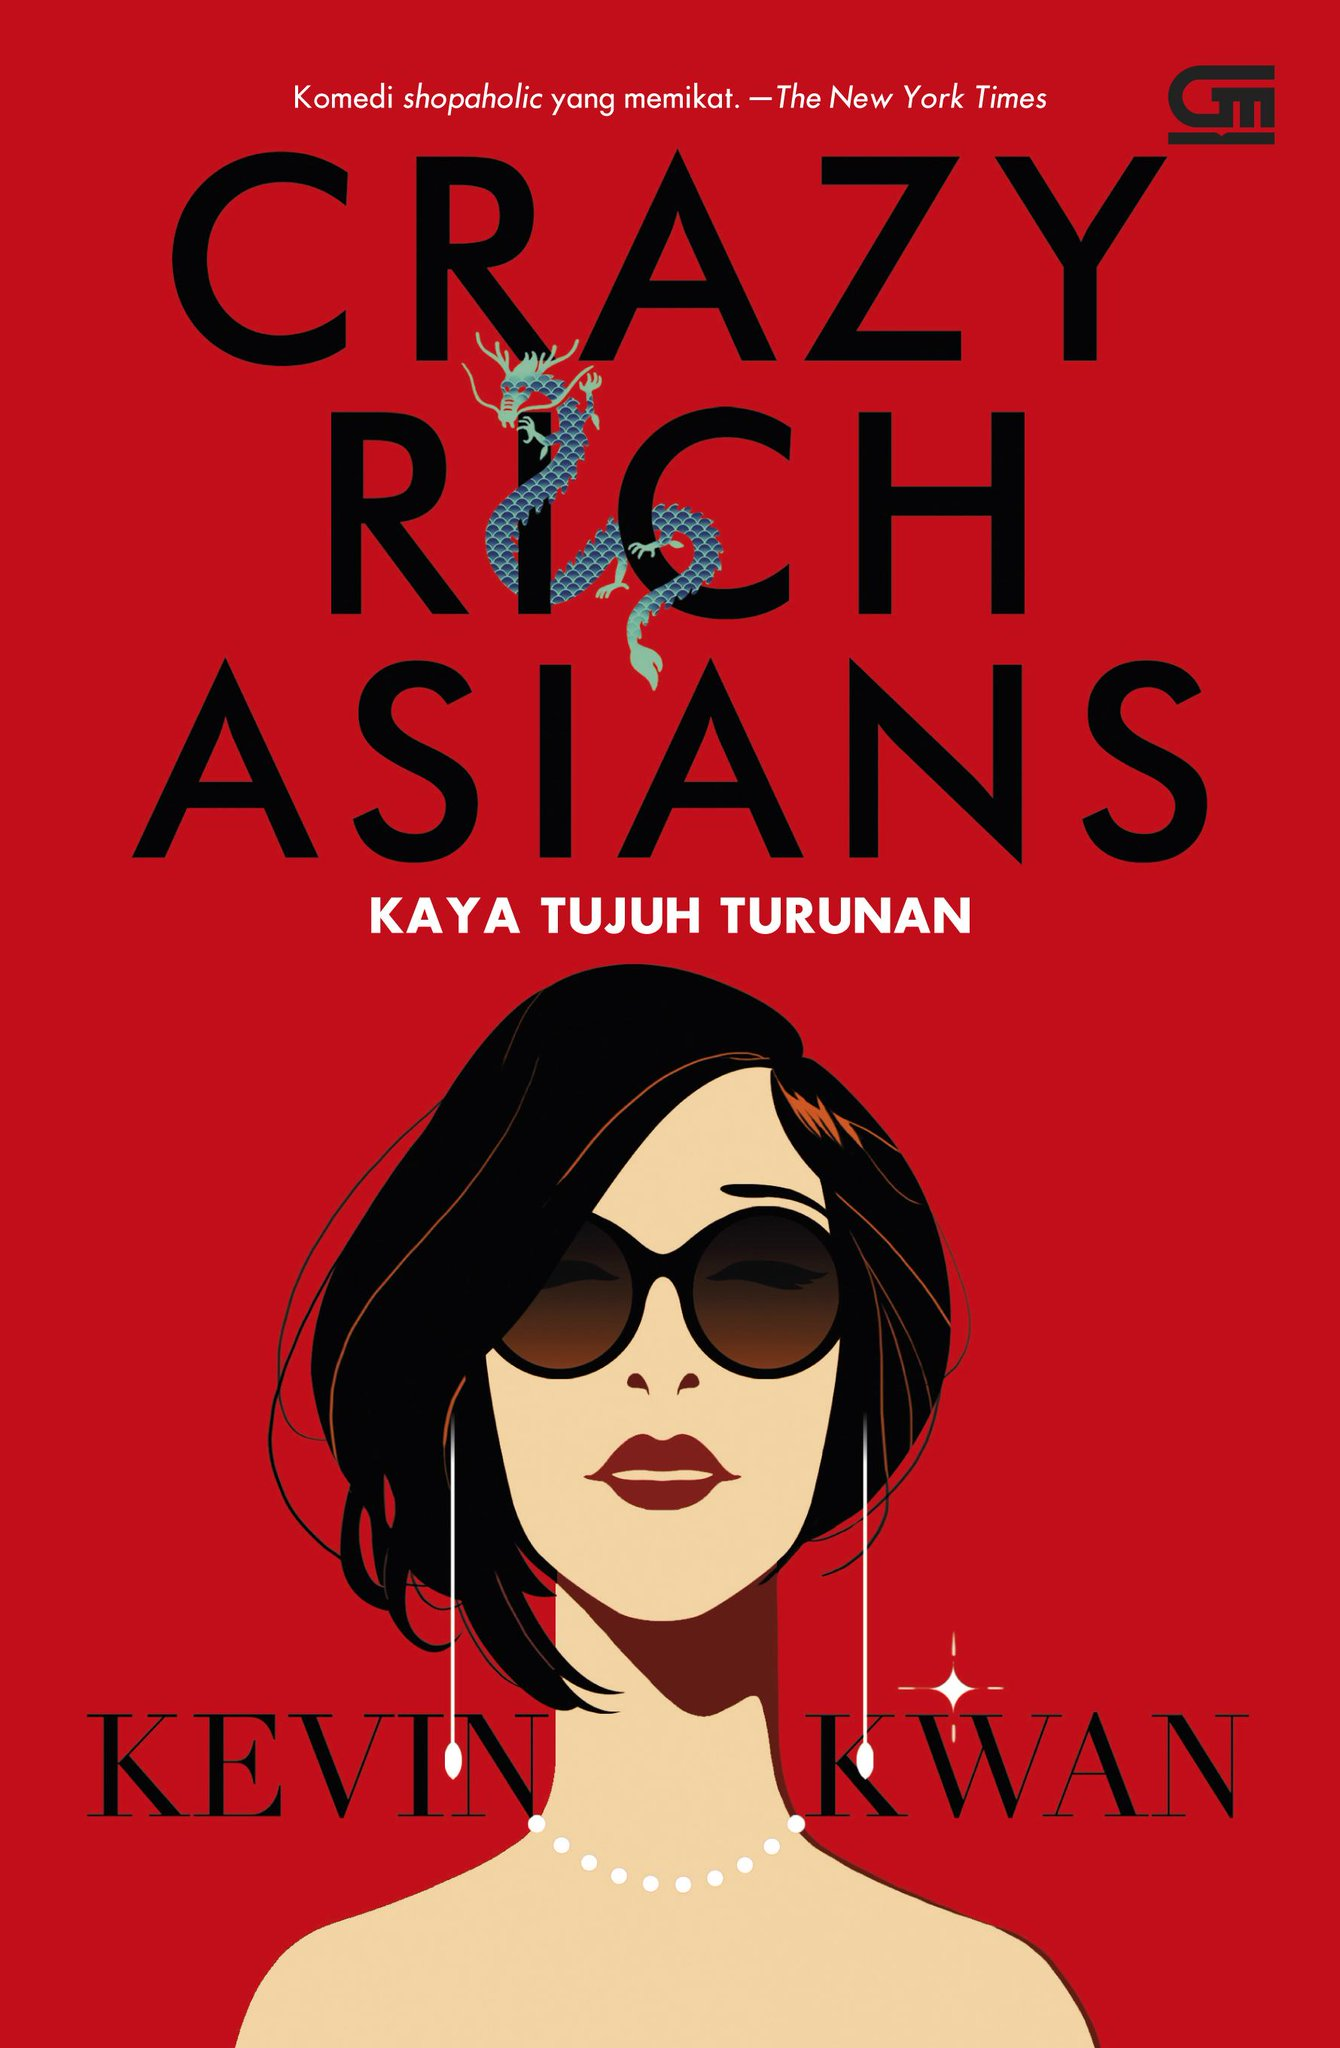 📖 Novel of the Week: Crazy Rich Asians by Kevin Kwan